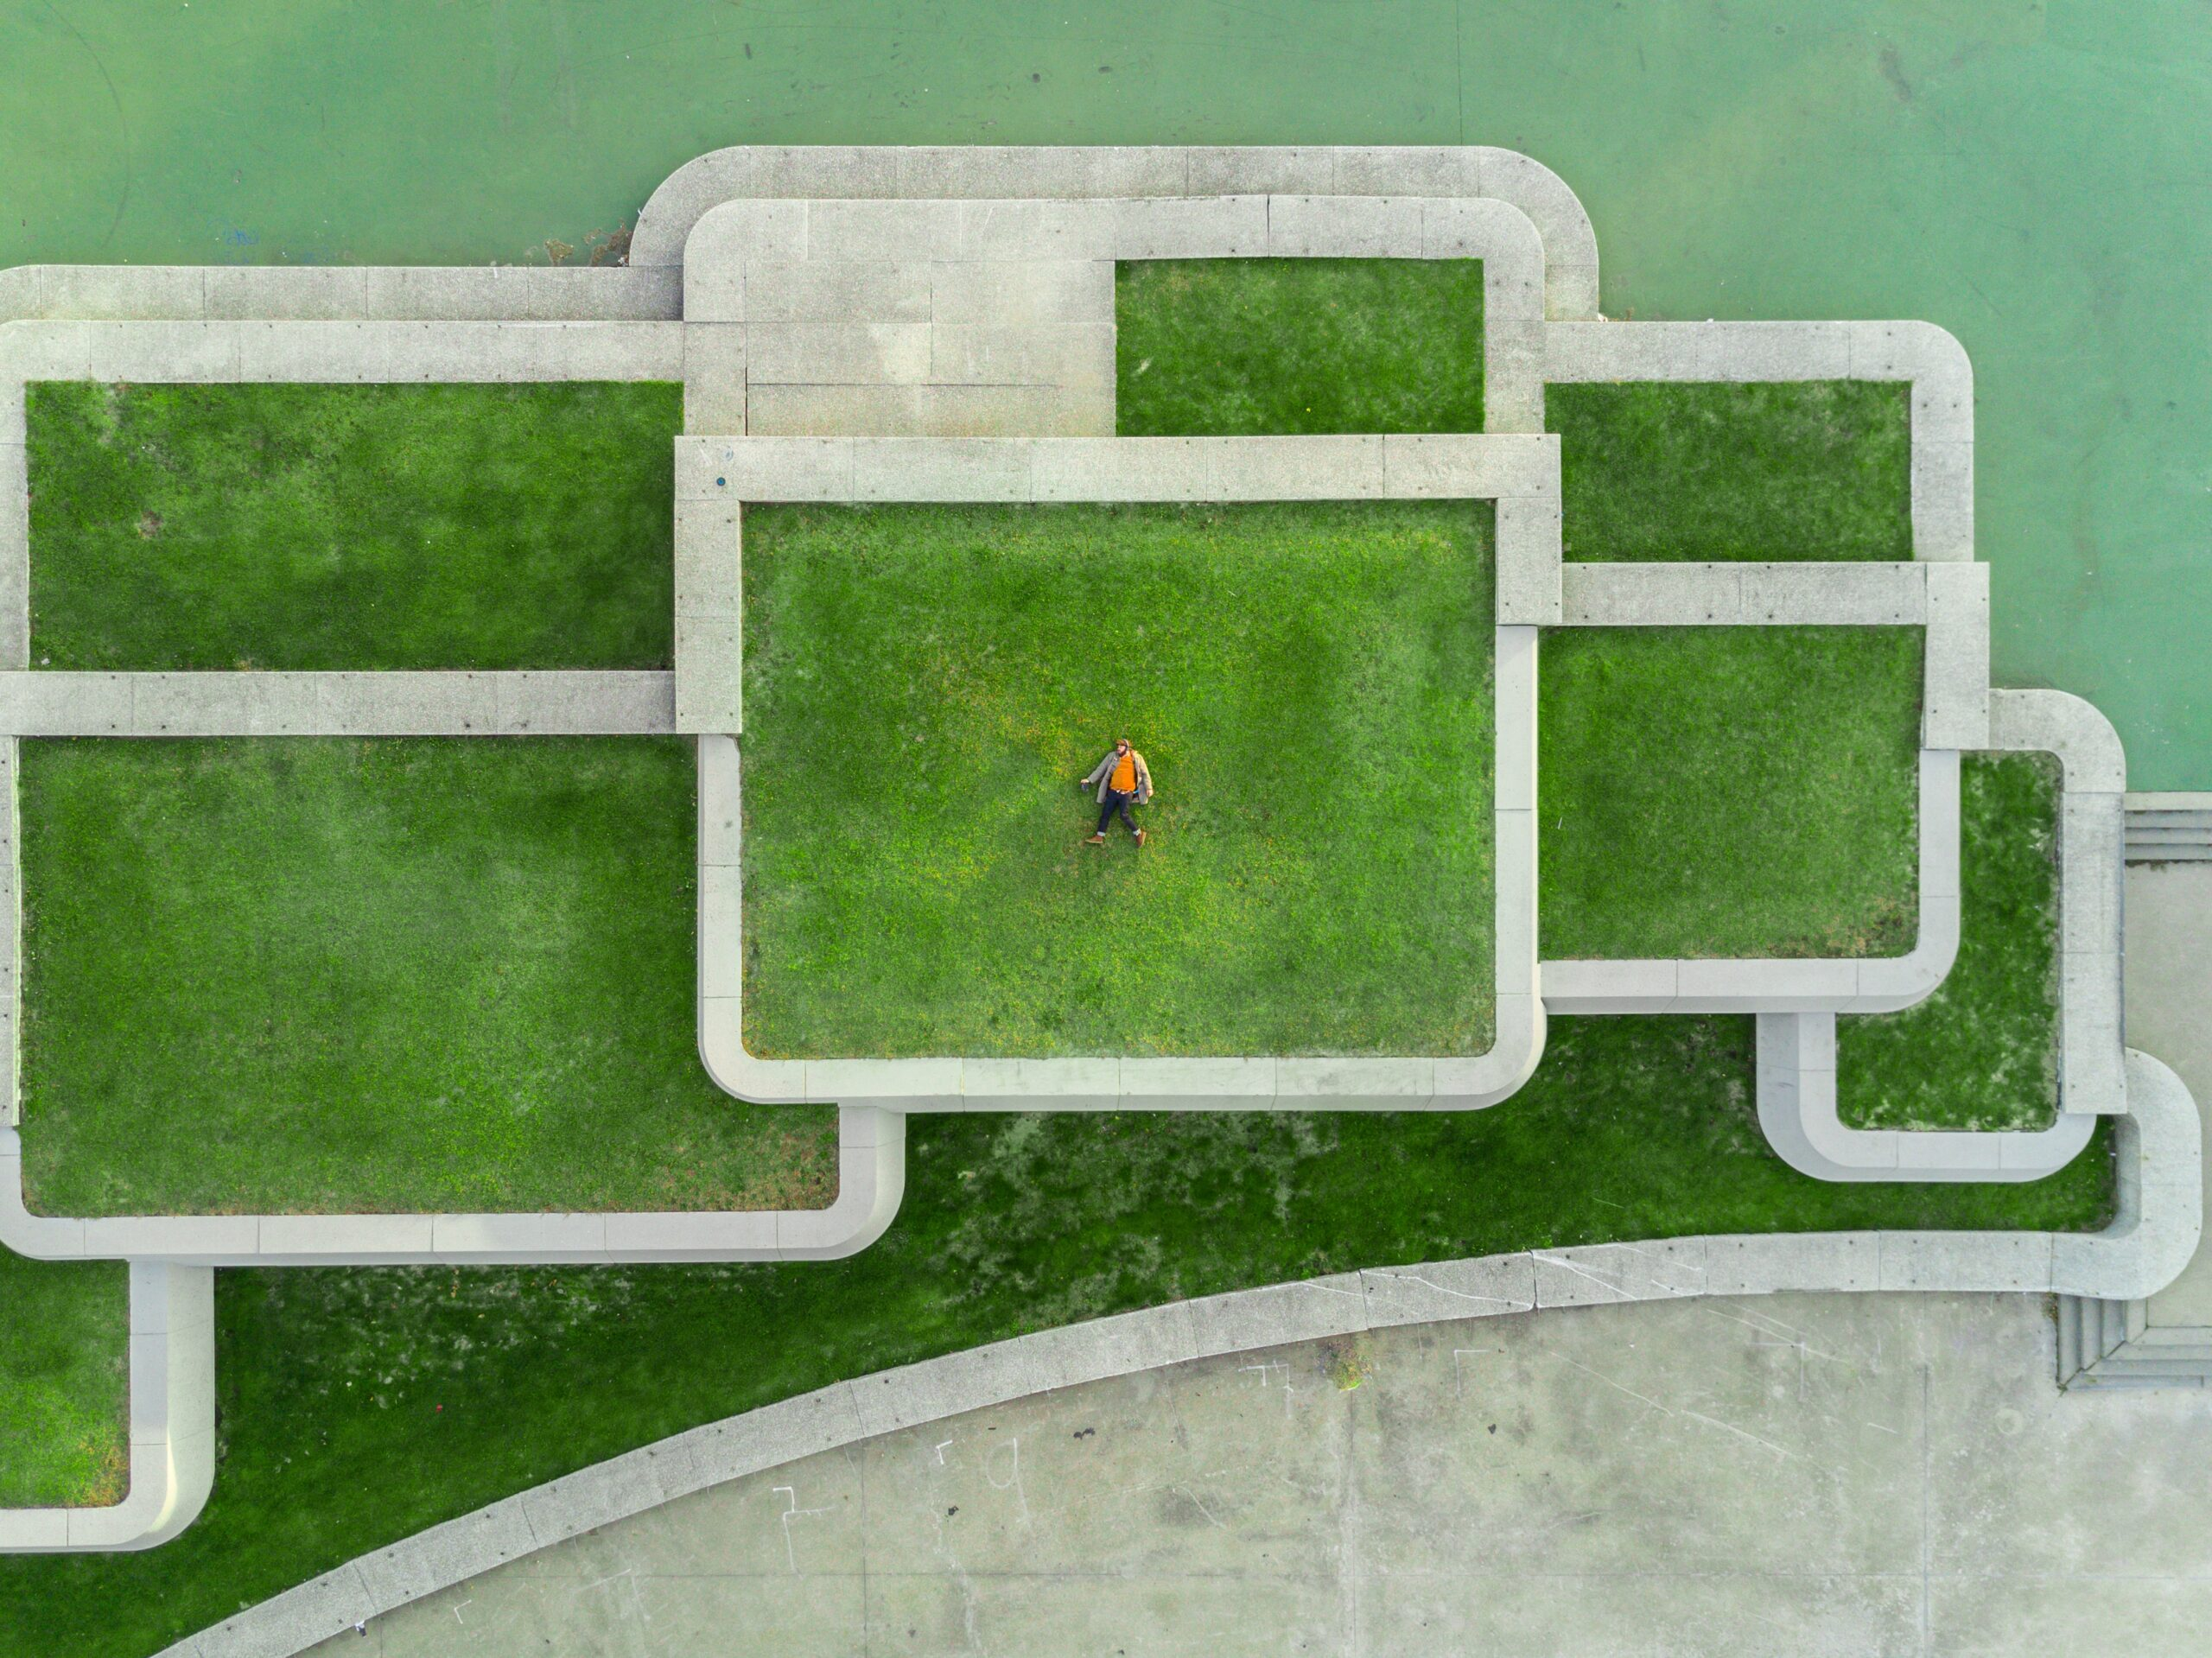 Man laying down in field or maze.